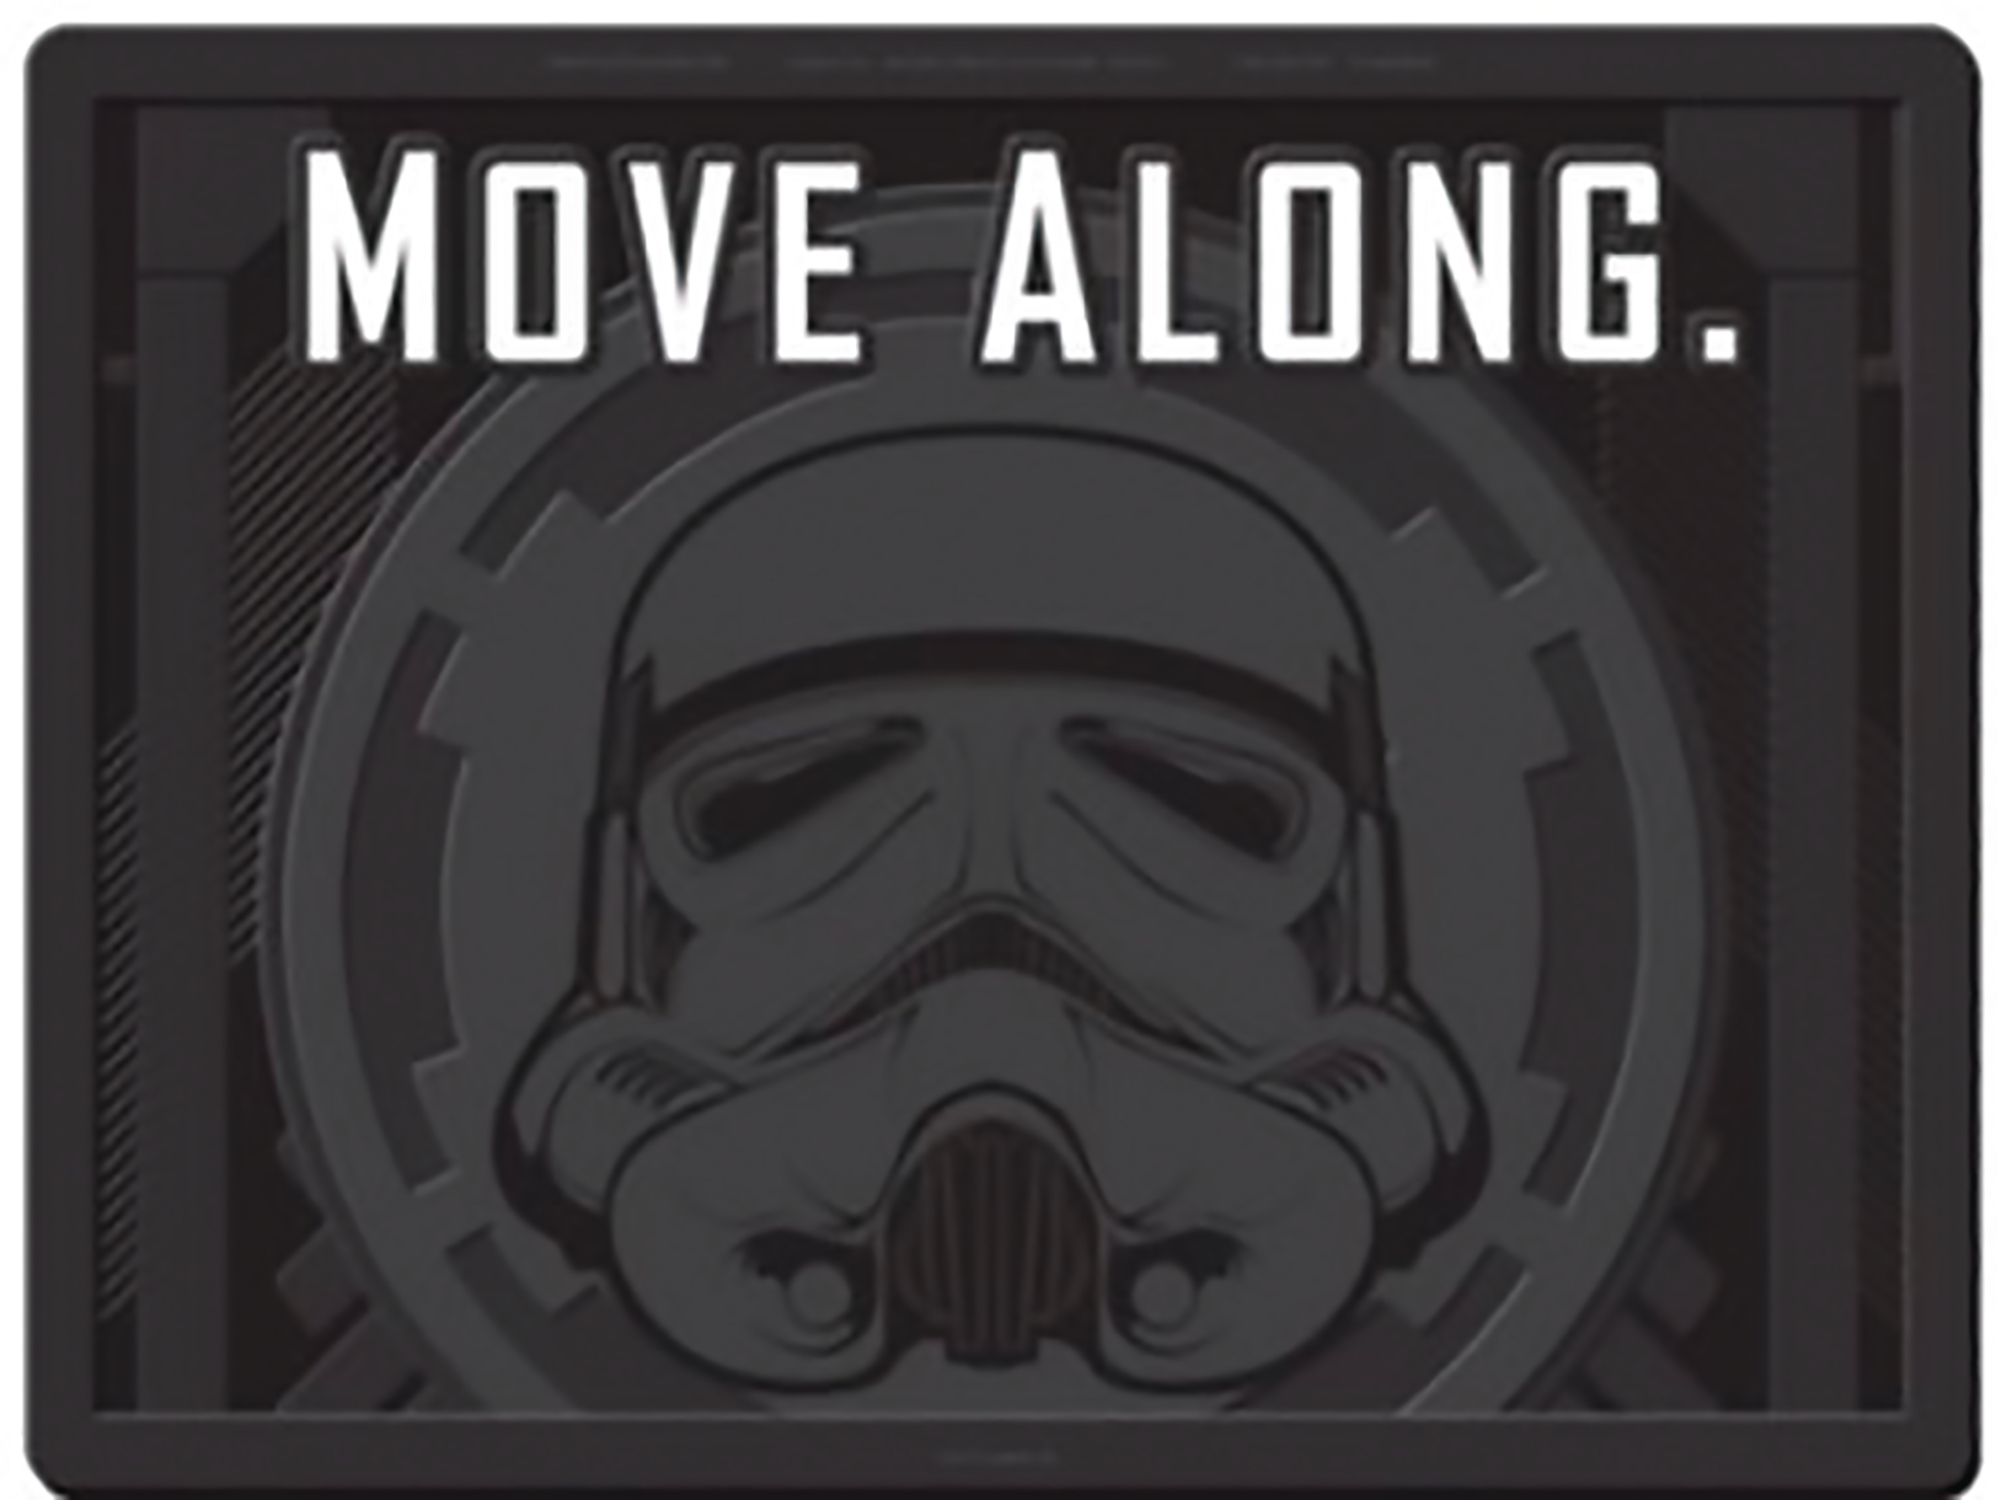 Star Wars: Move Along (Welcome Mat)